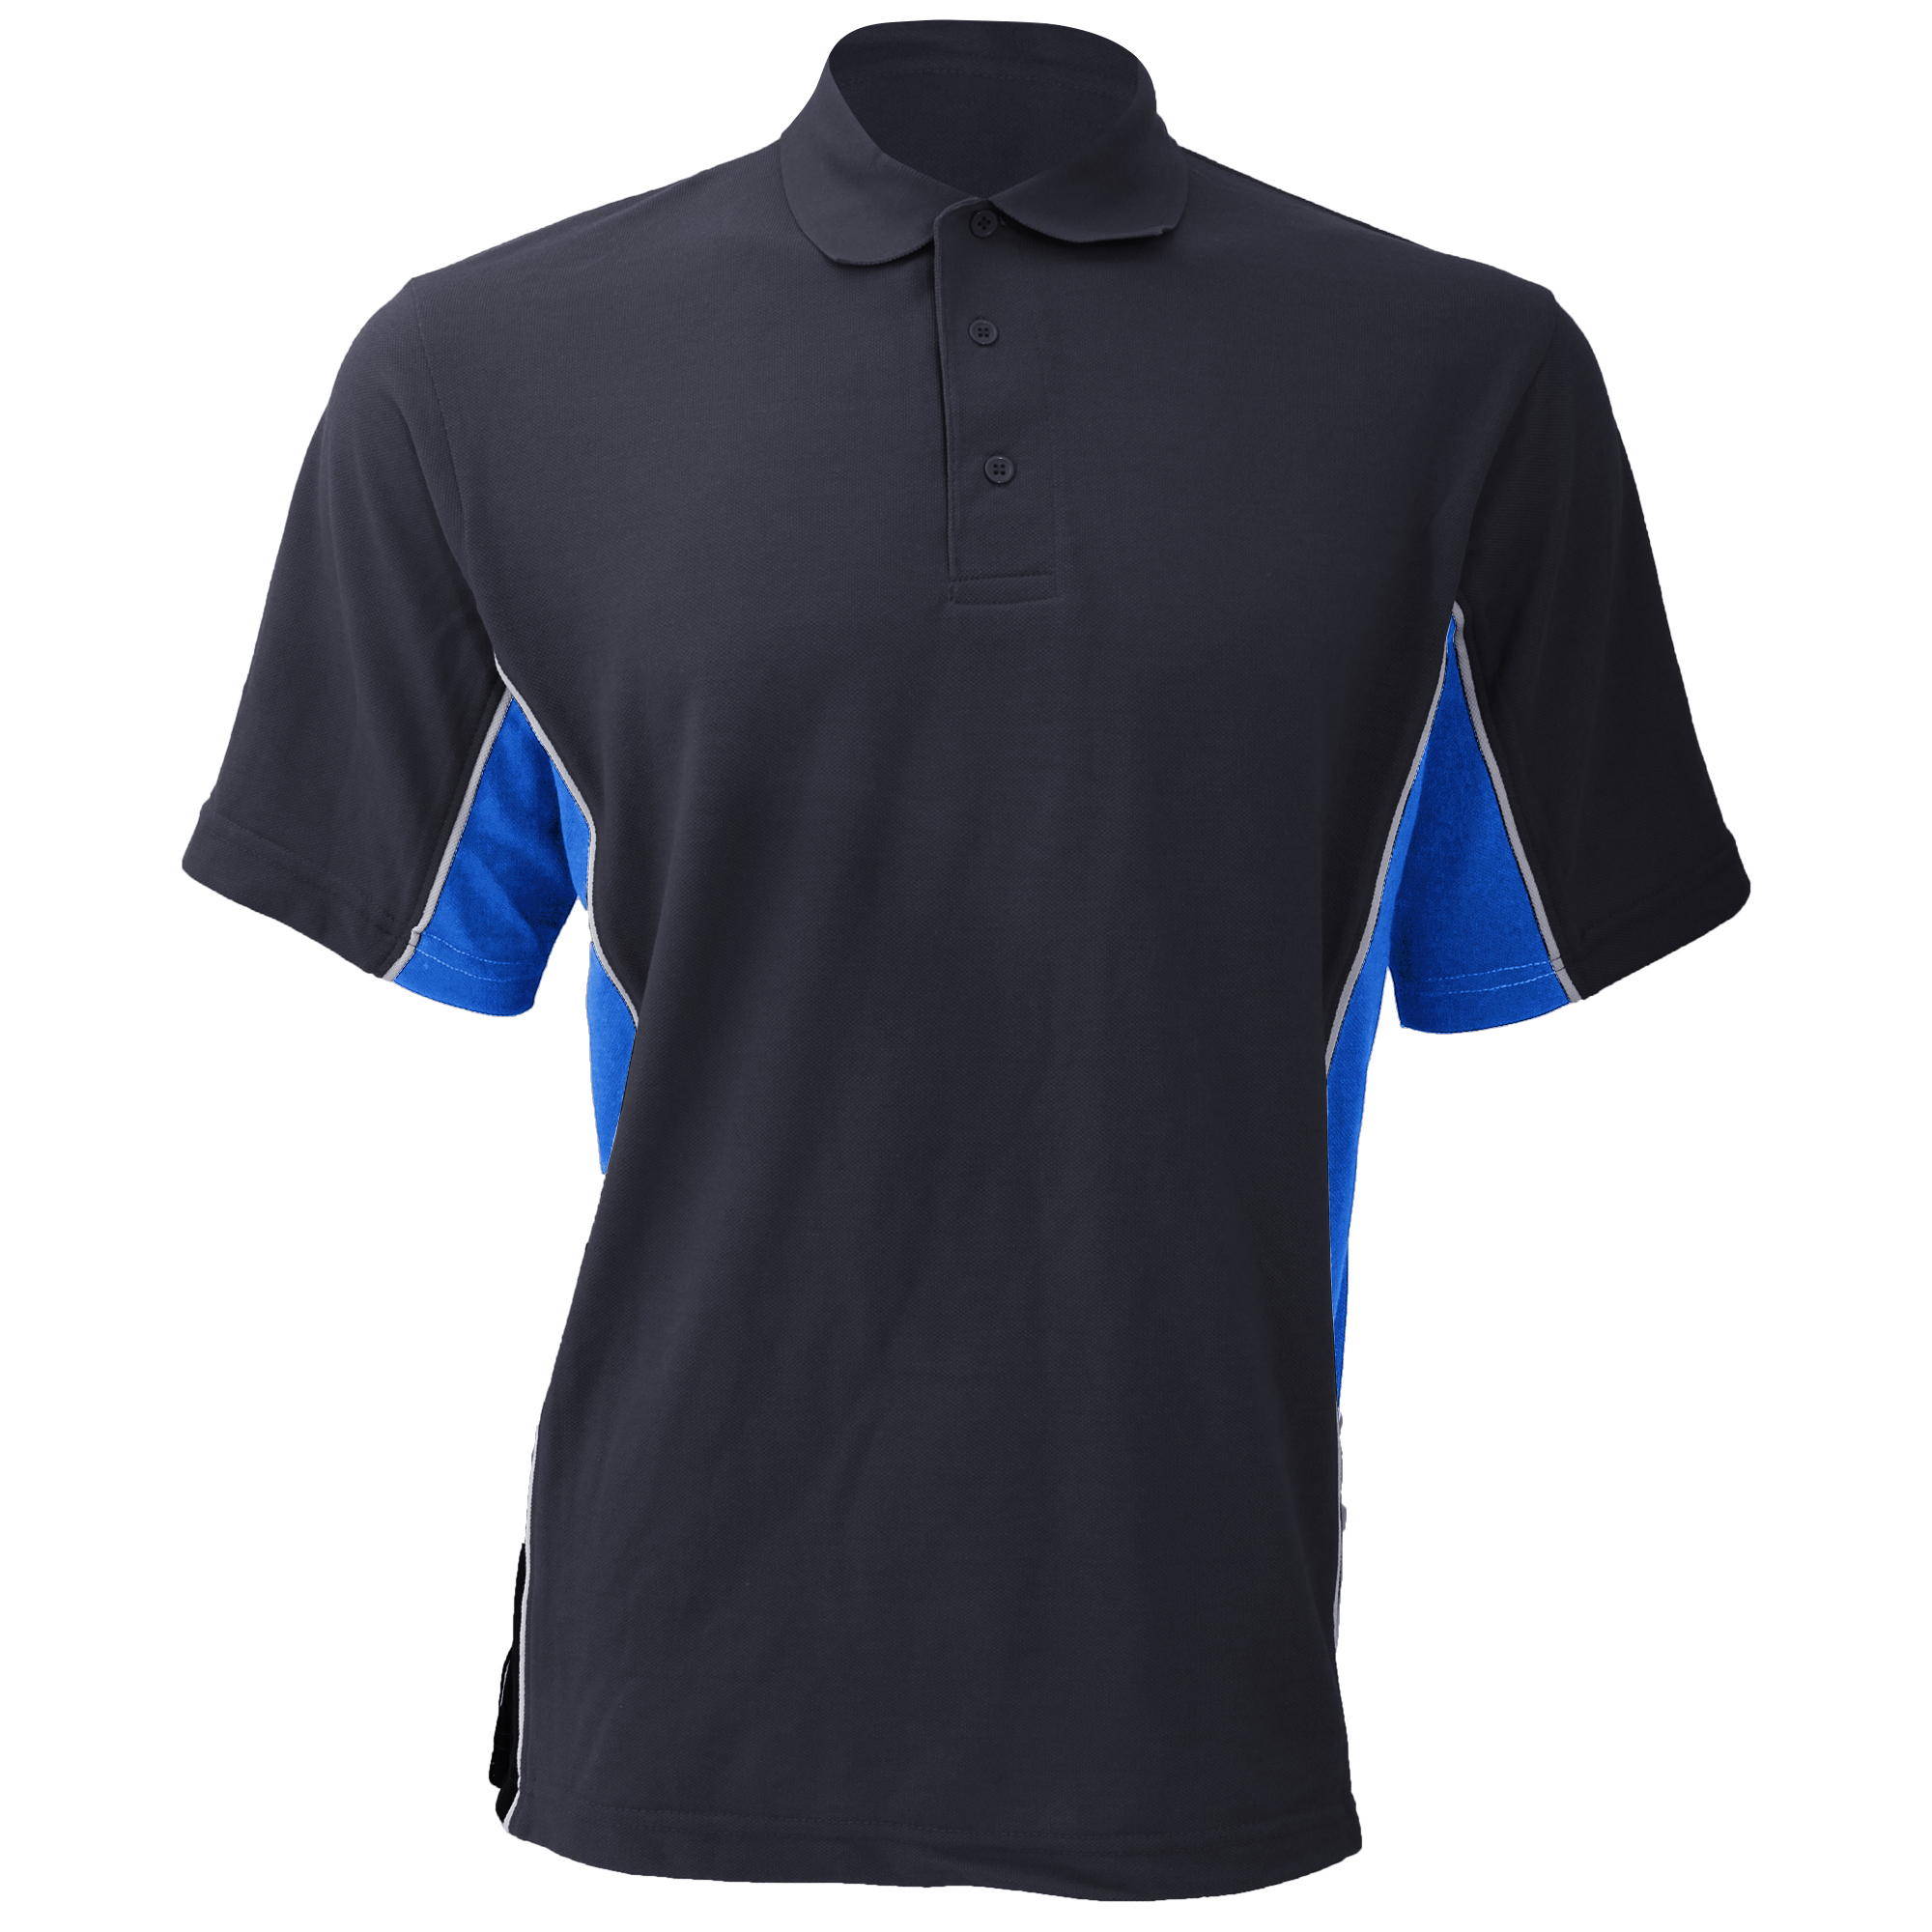 Gamegear® Mens Track Pique Short Sleeve Polo Shirt Top (2XL) (Red/Black/White)